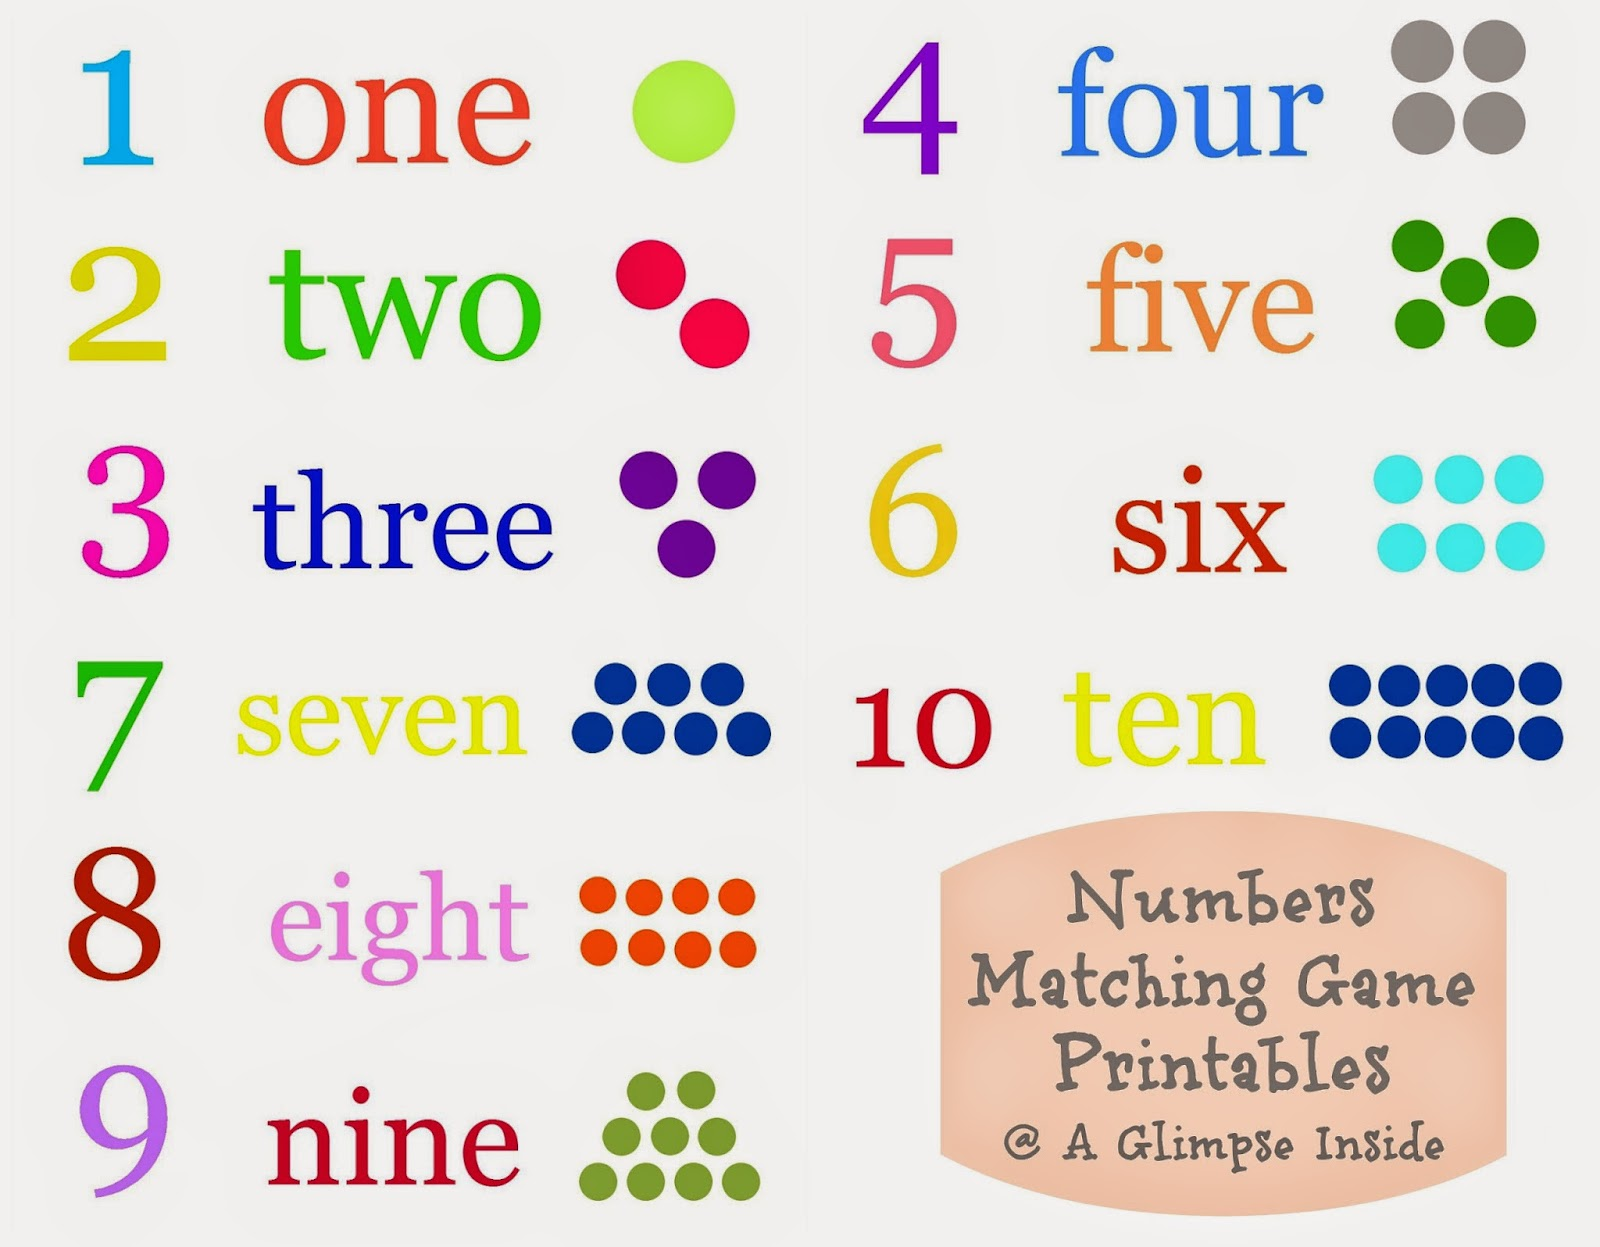 Numbers Matching Game Printables